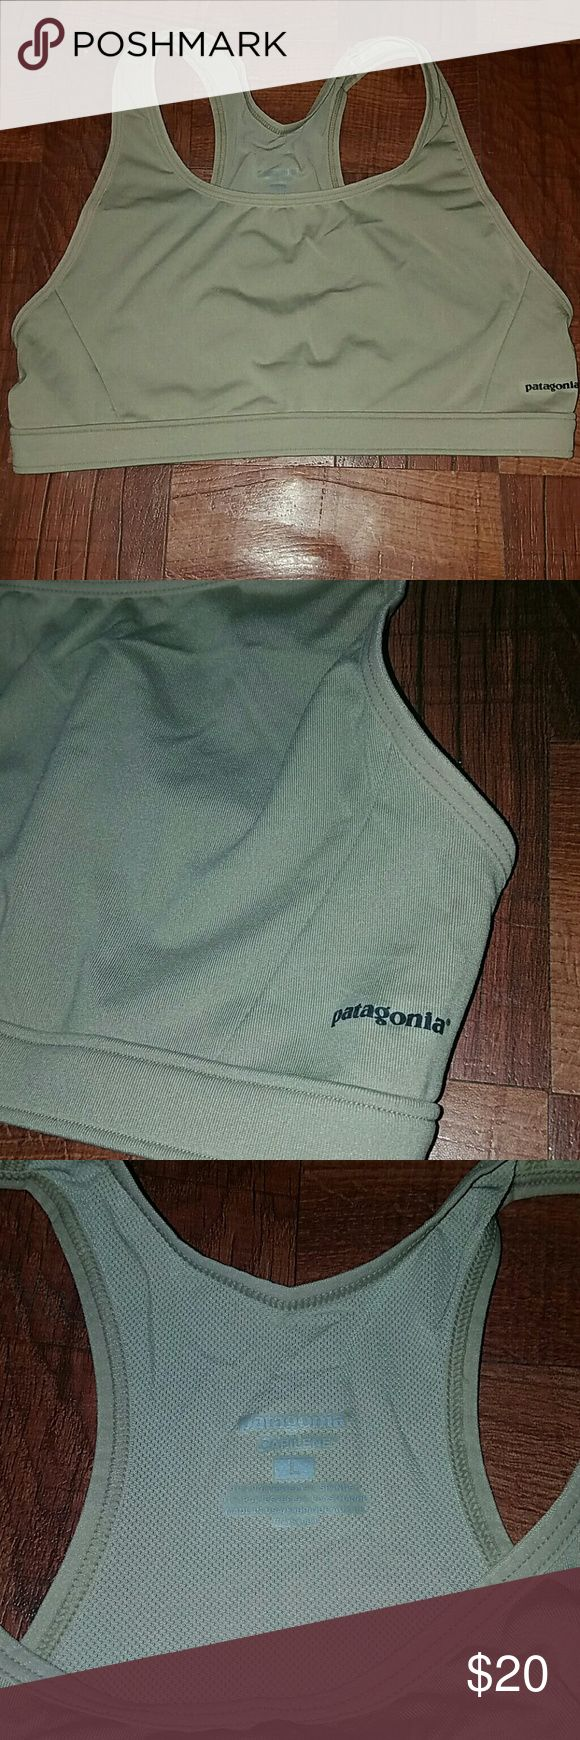 NWOT Patagonia Capilene Nude Sports Bra New without a tag. Racerback. Mesh lining. Breathable. Polyester, Spandex with Moisture Wicking Performance. Great Fit! 💕 Patagonia Intimates & Sleepwear Bras